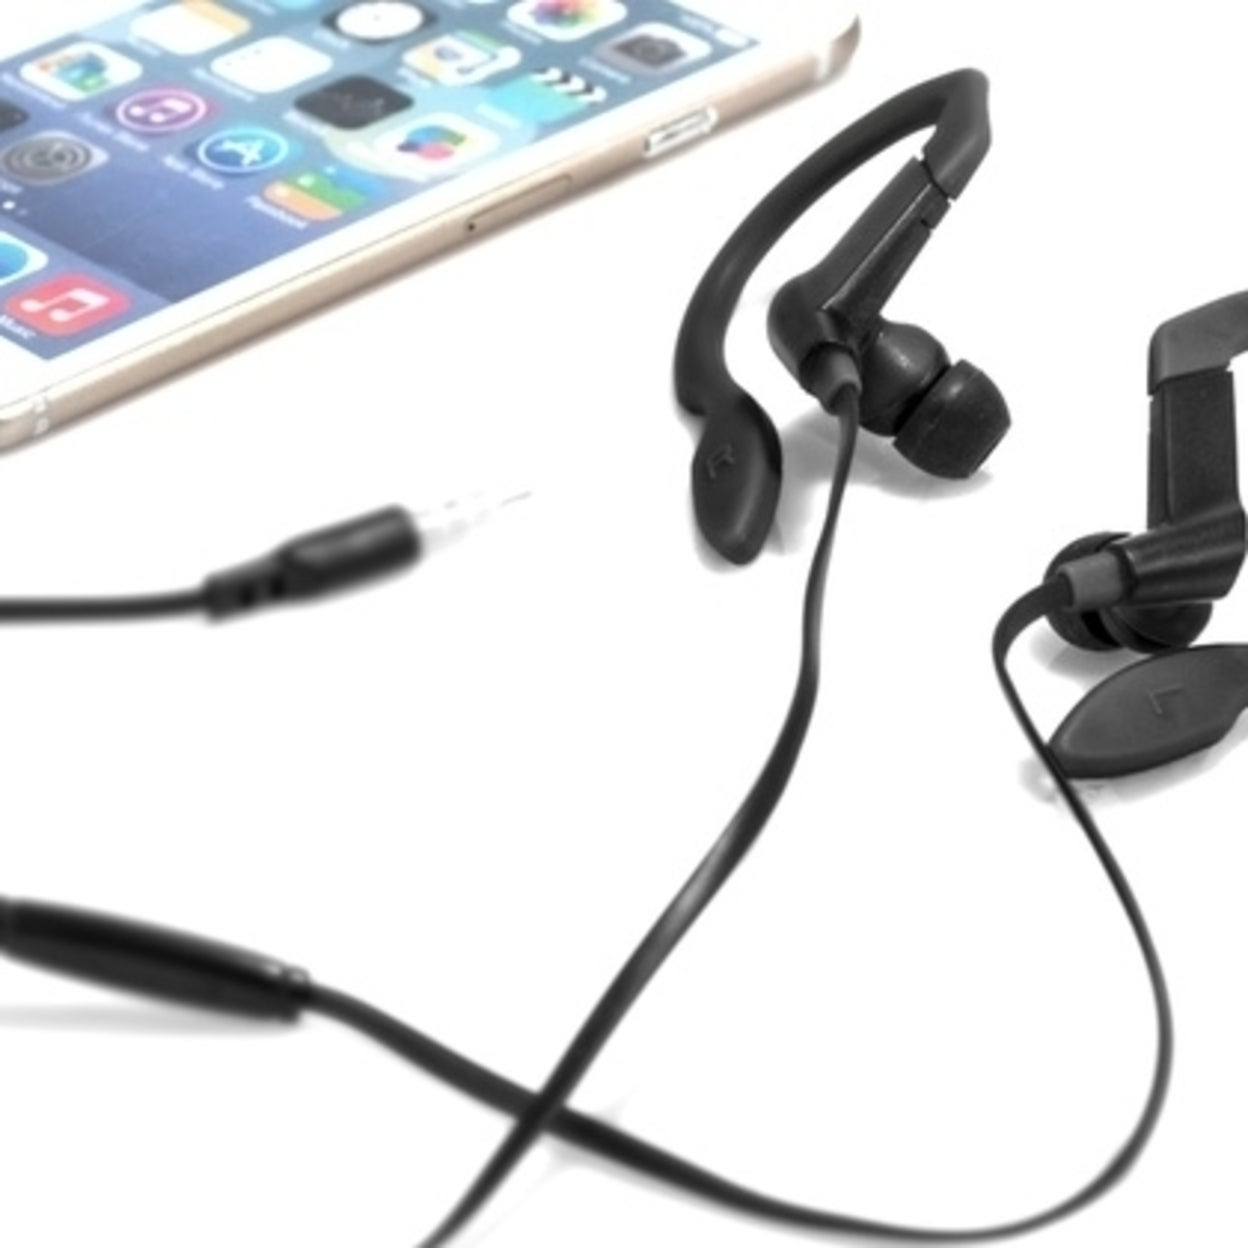 d25aef8c946 Shop Pair of Bytech Stereo Earbuds with Mic - Free Shipping On Orders Over  $45 - Overstock - 23124075